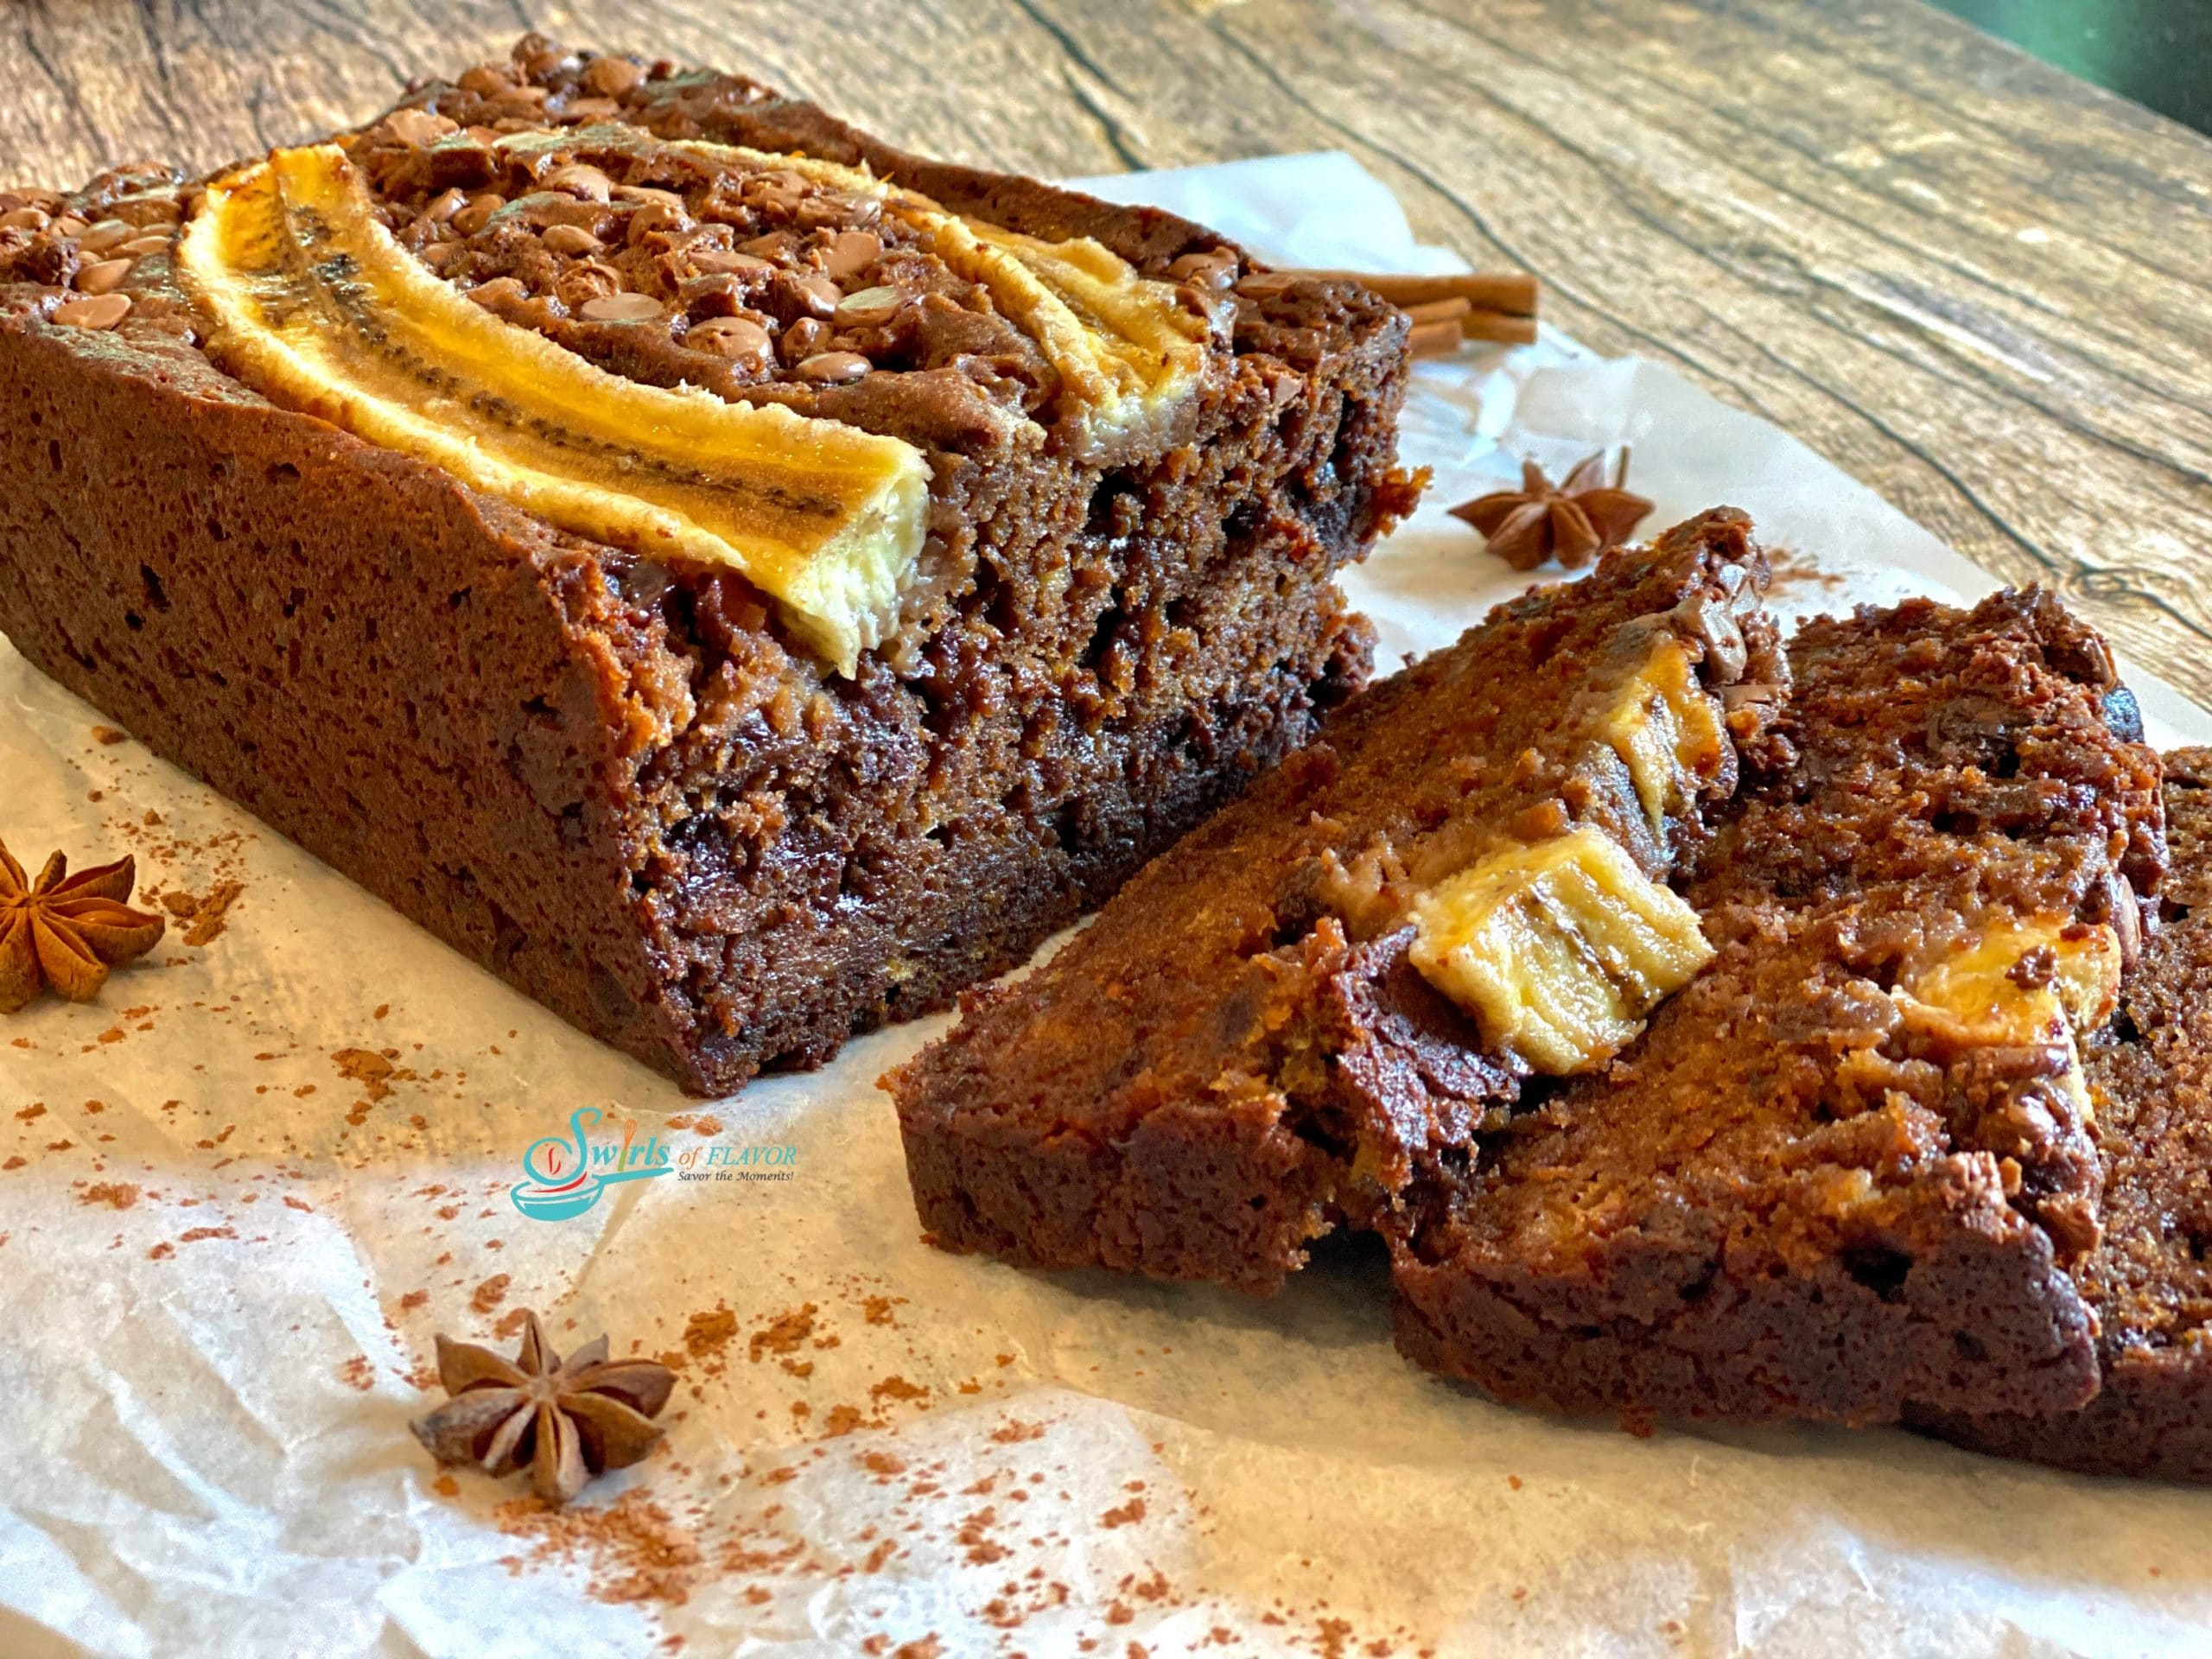 chocolate banana bread with sliced banana on top and slices of bread in front